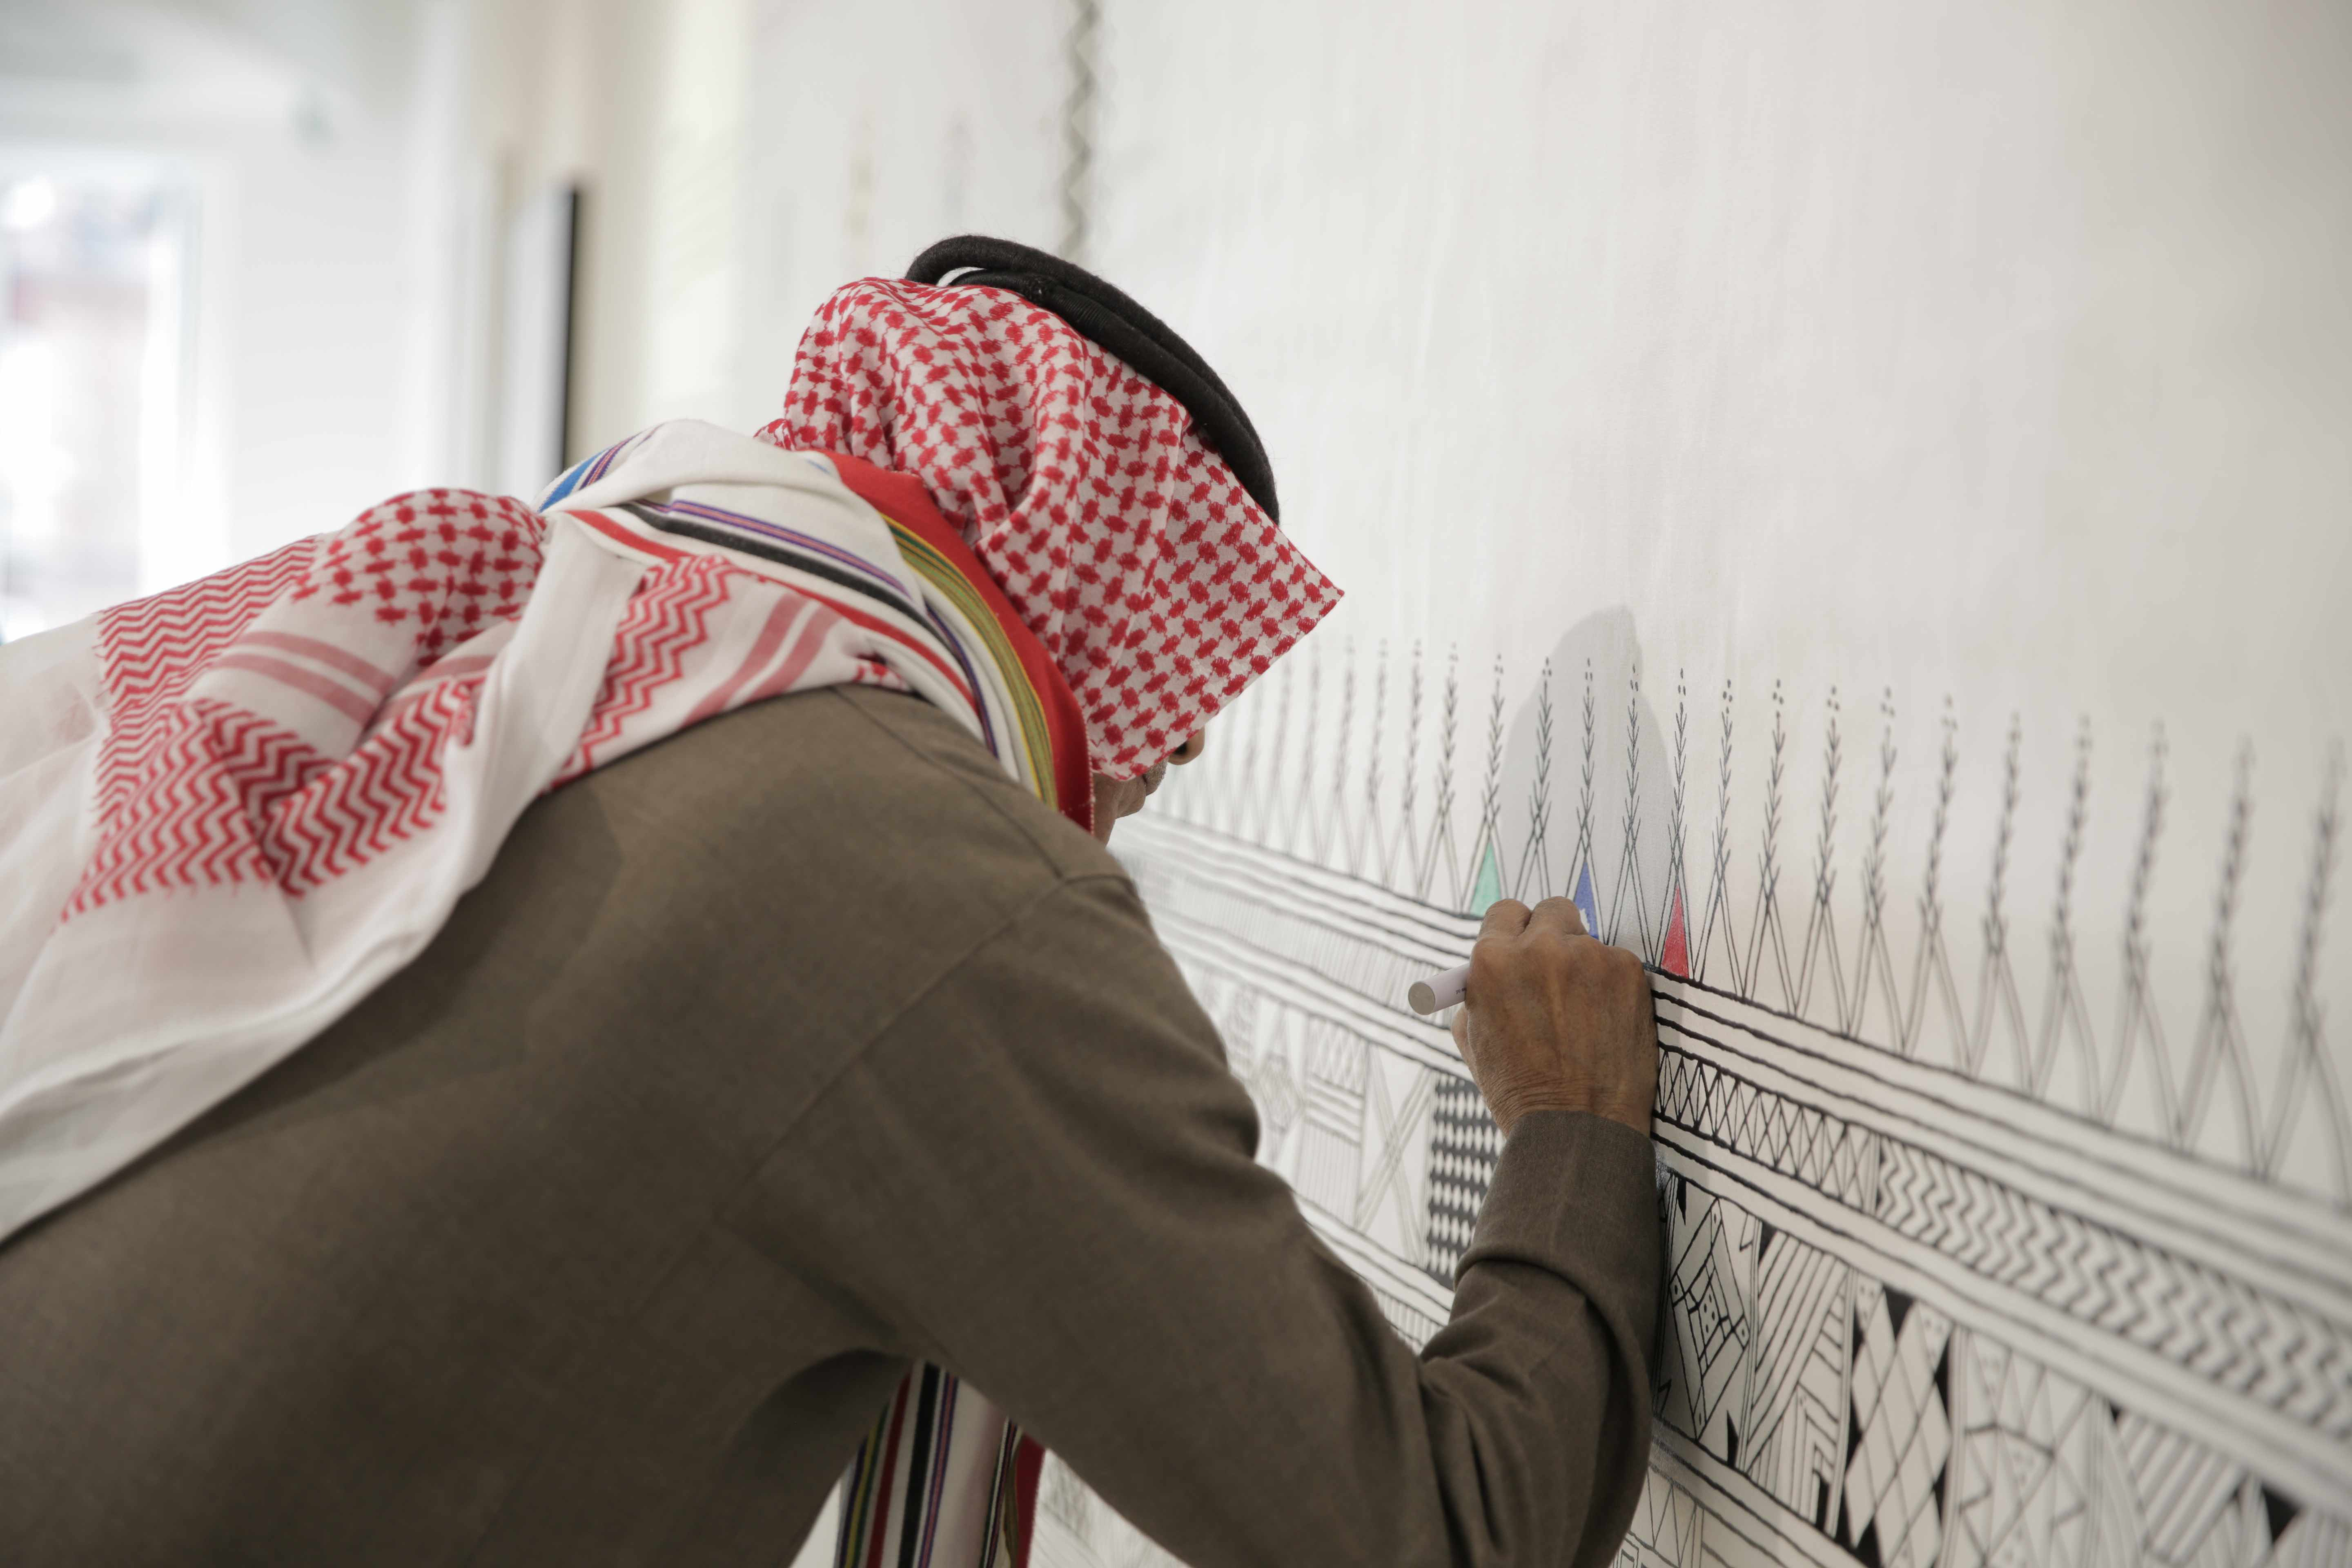 Performing the Saudi art, Alqatt Alasiri